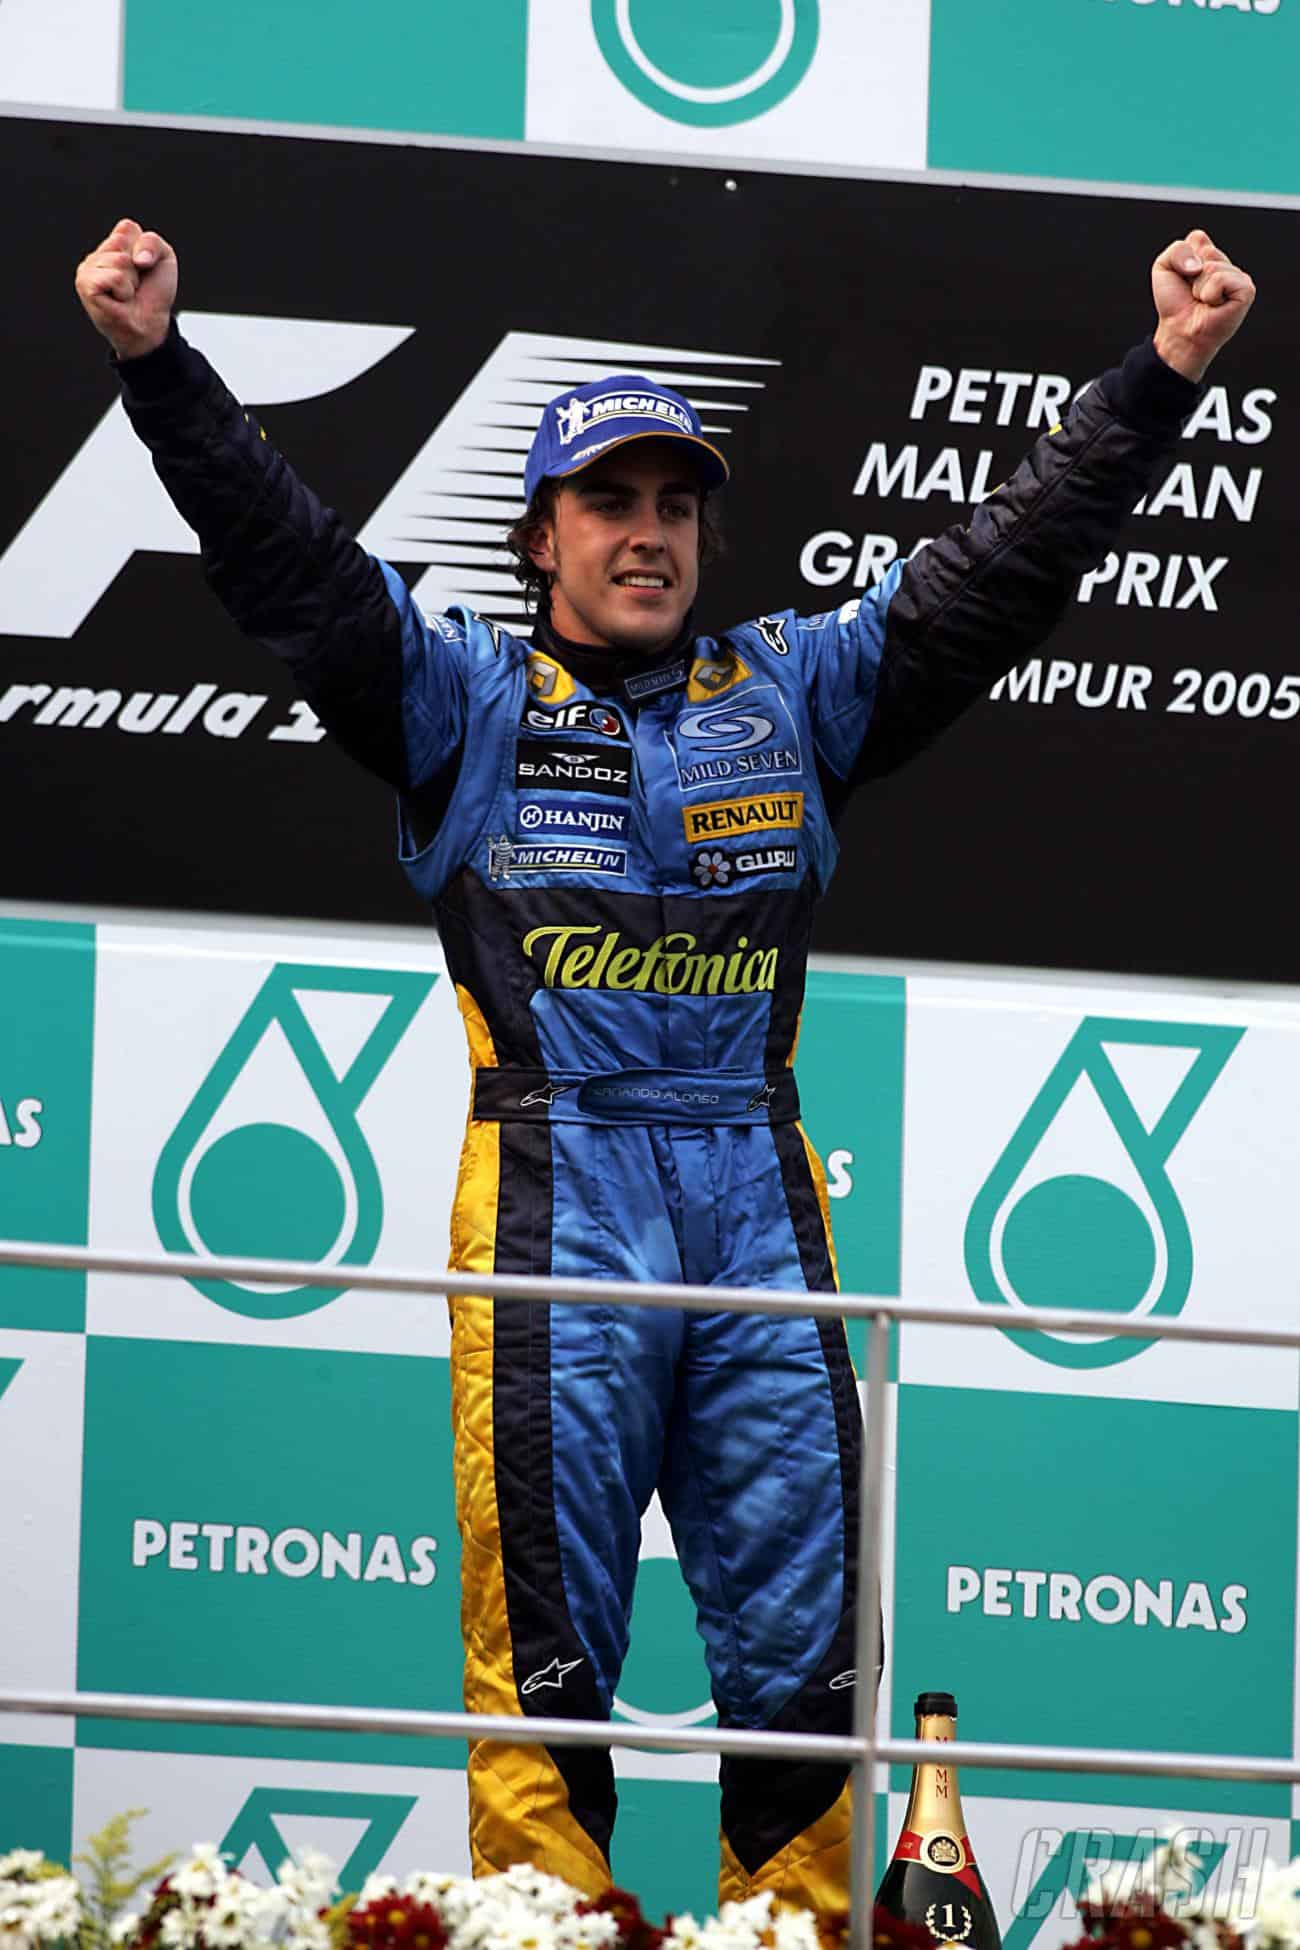 2005 Malaysian GP F1 Fernando Alonso celebrate on the podium Photo Chrash-net